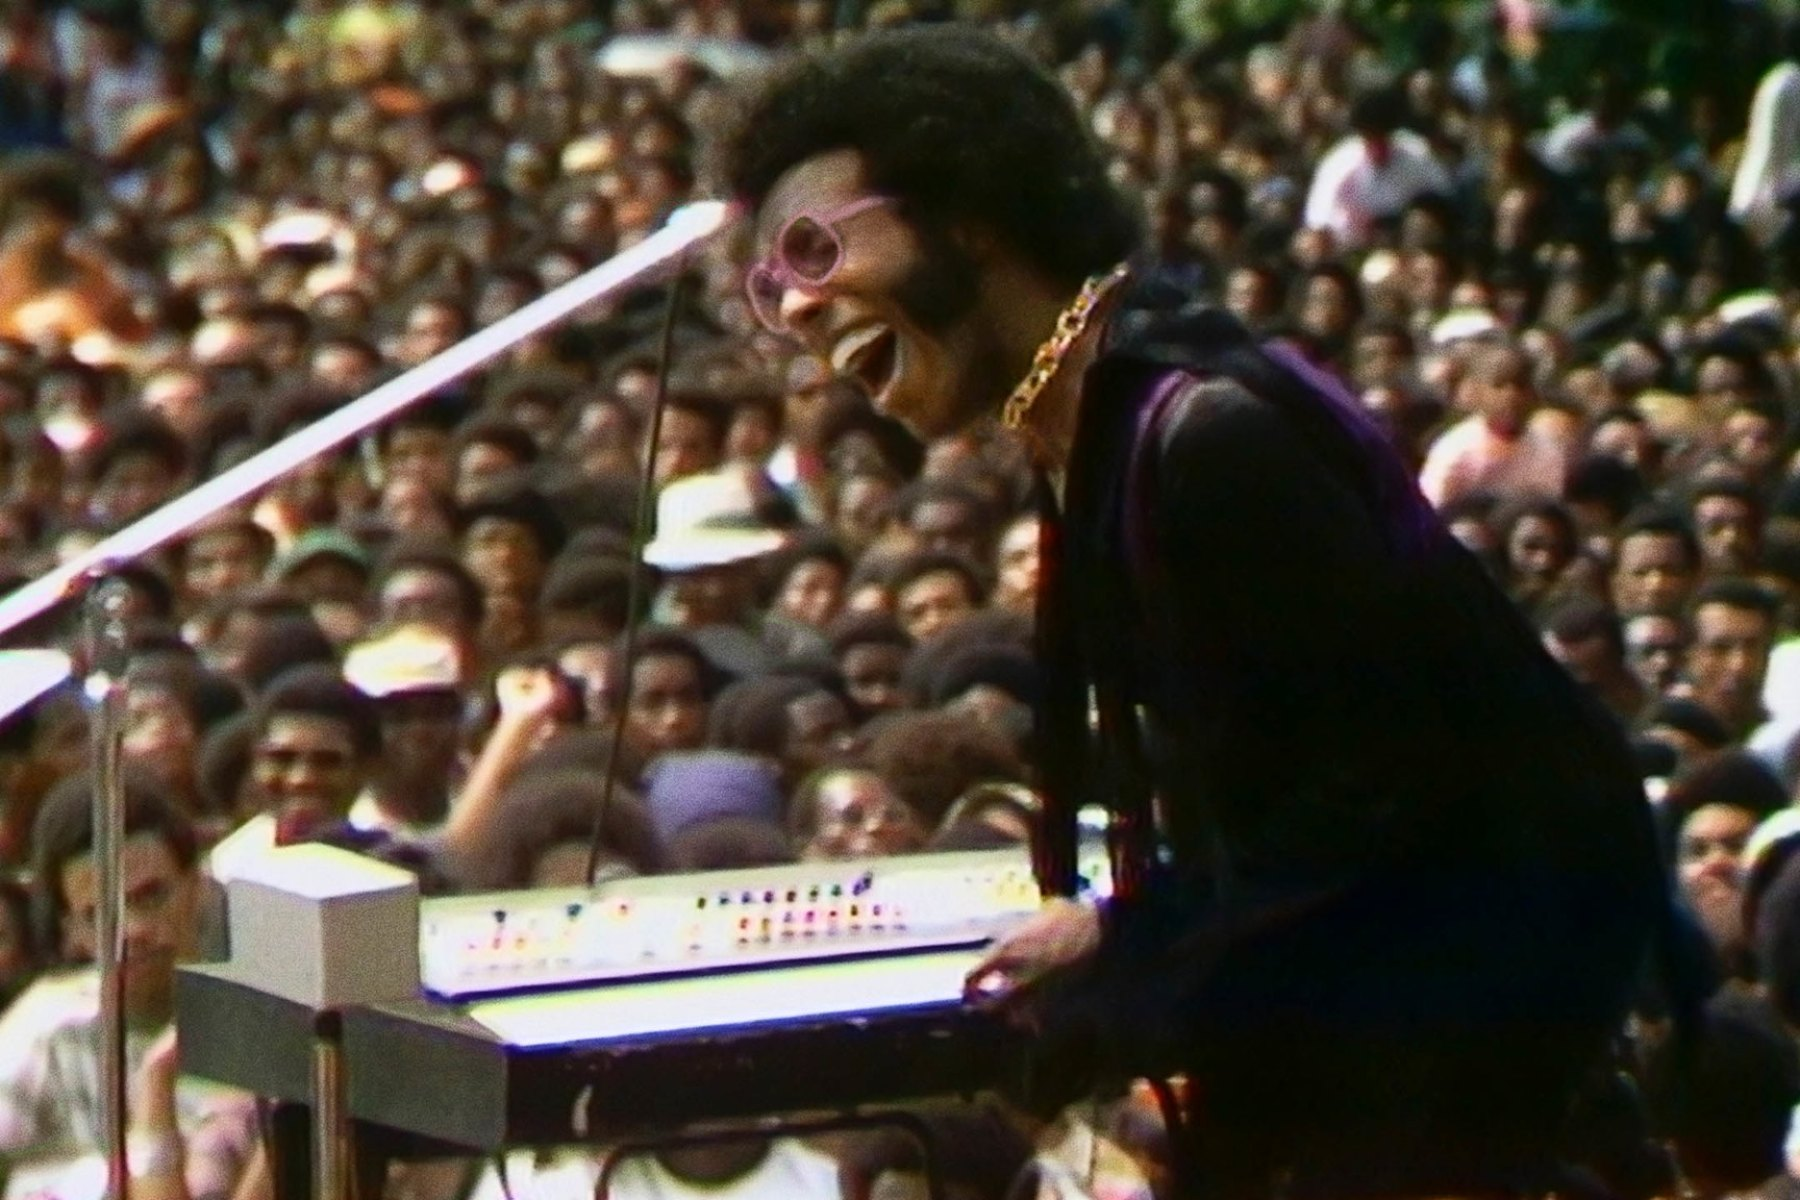 Sly Stone of Sly and the Family Stone, giving the crowd what they want, in a scene from the documentary 'Summer of Soul.'